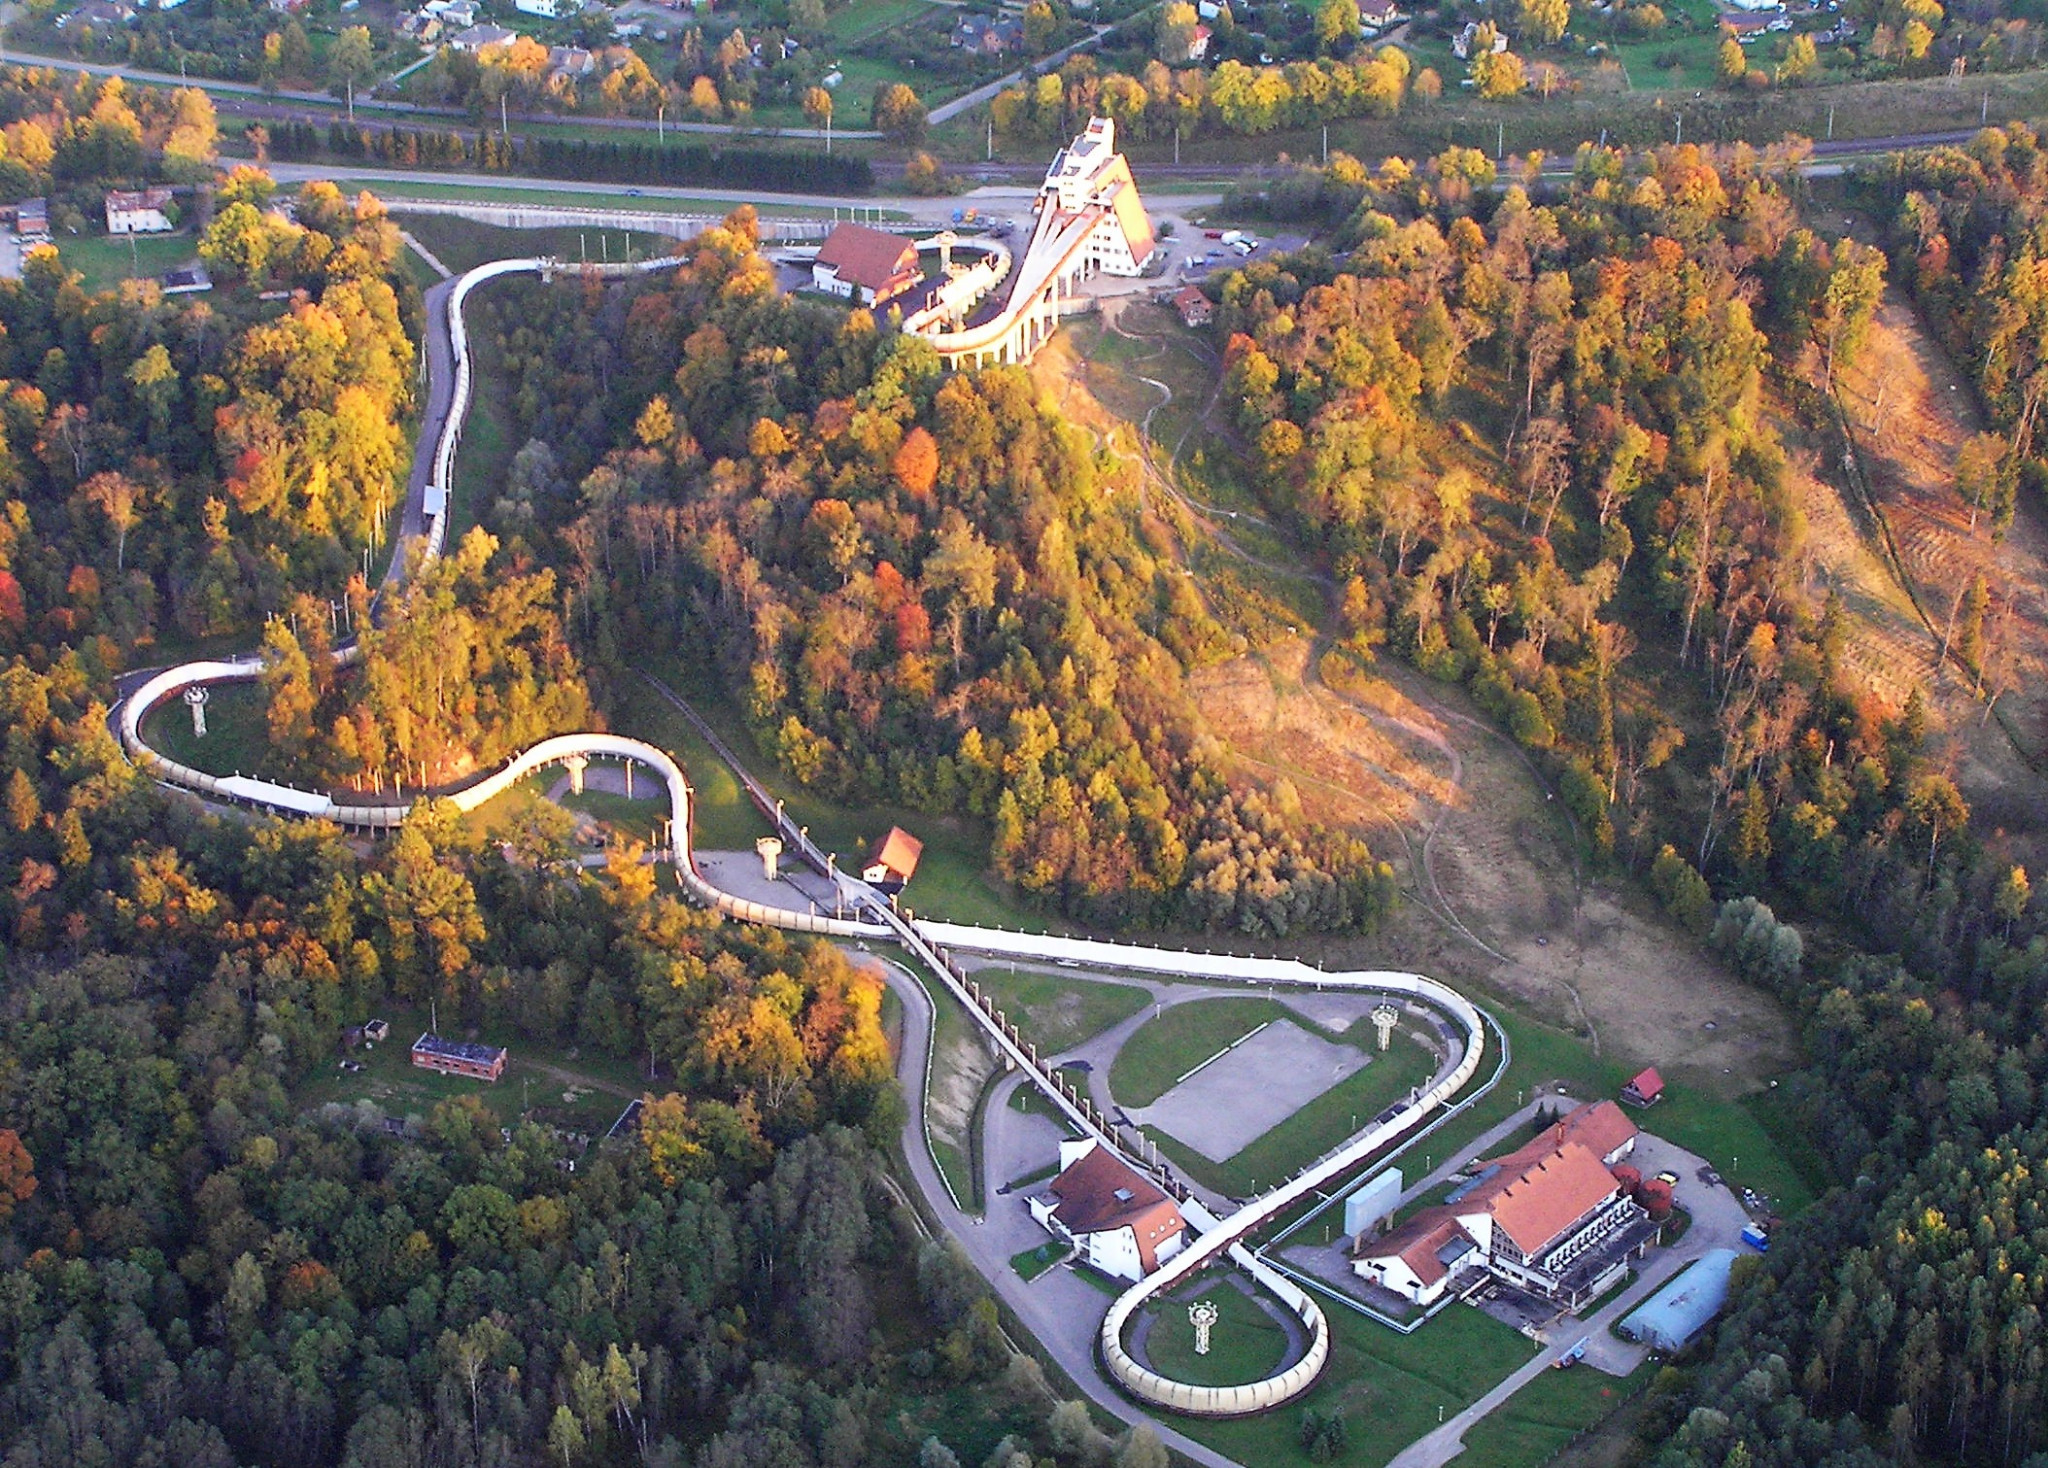 Sigulda has hosted several major bobsleigh, luge and skeleton events ©Getty Images